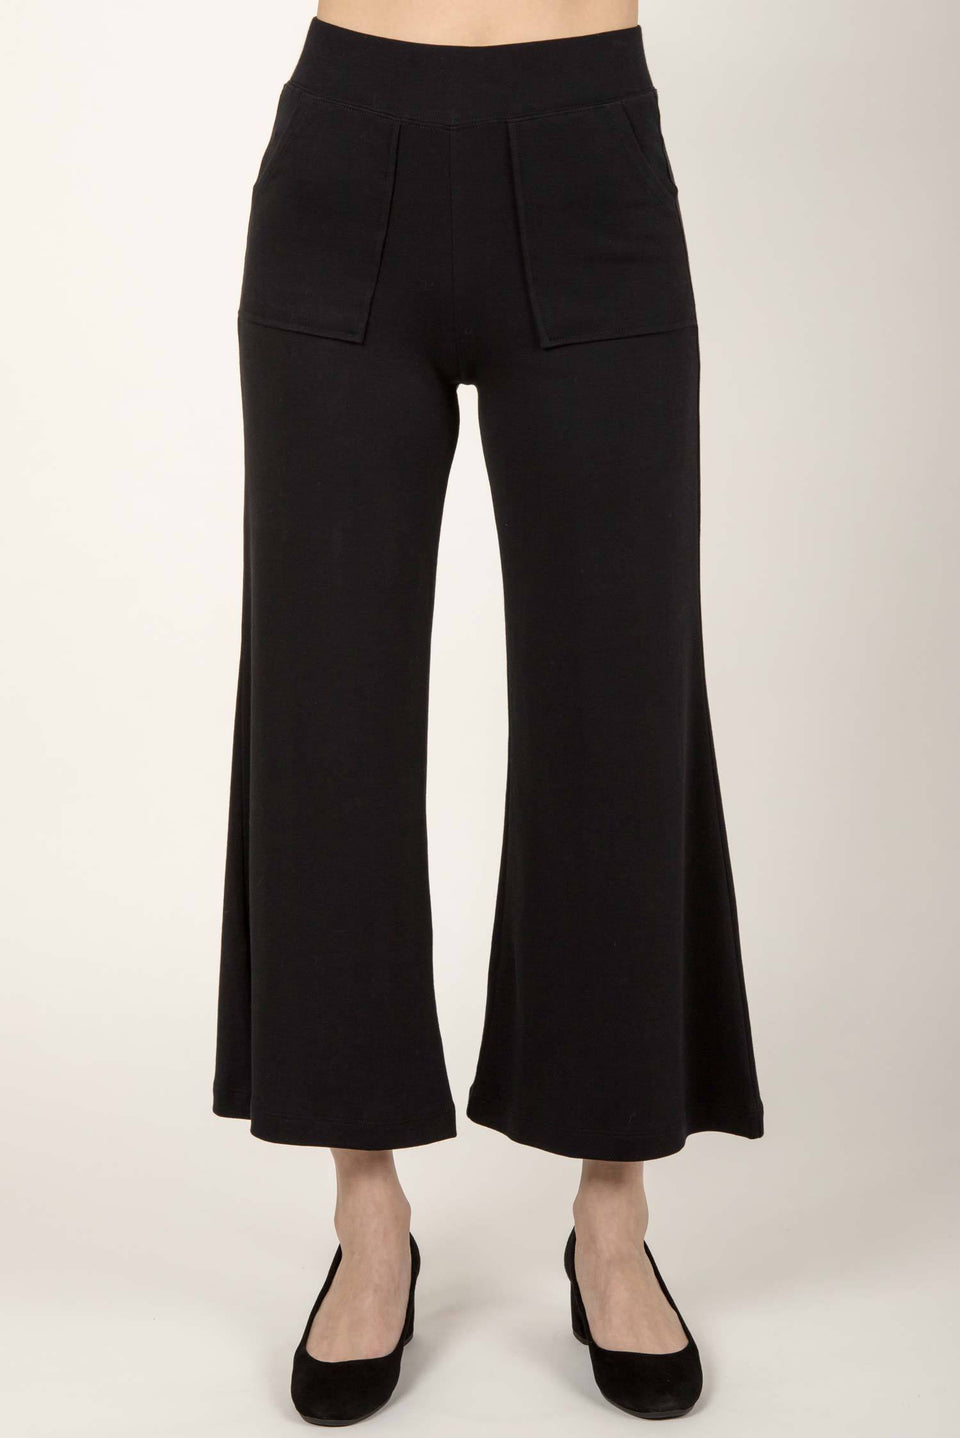 Essential Cropped Wide Leg Pant in Black